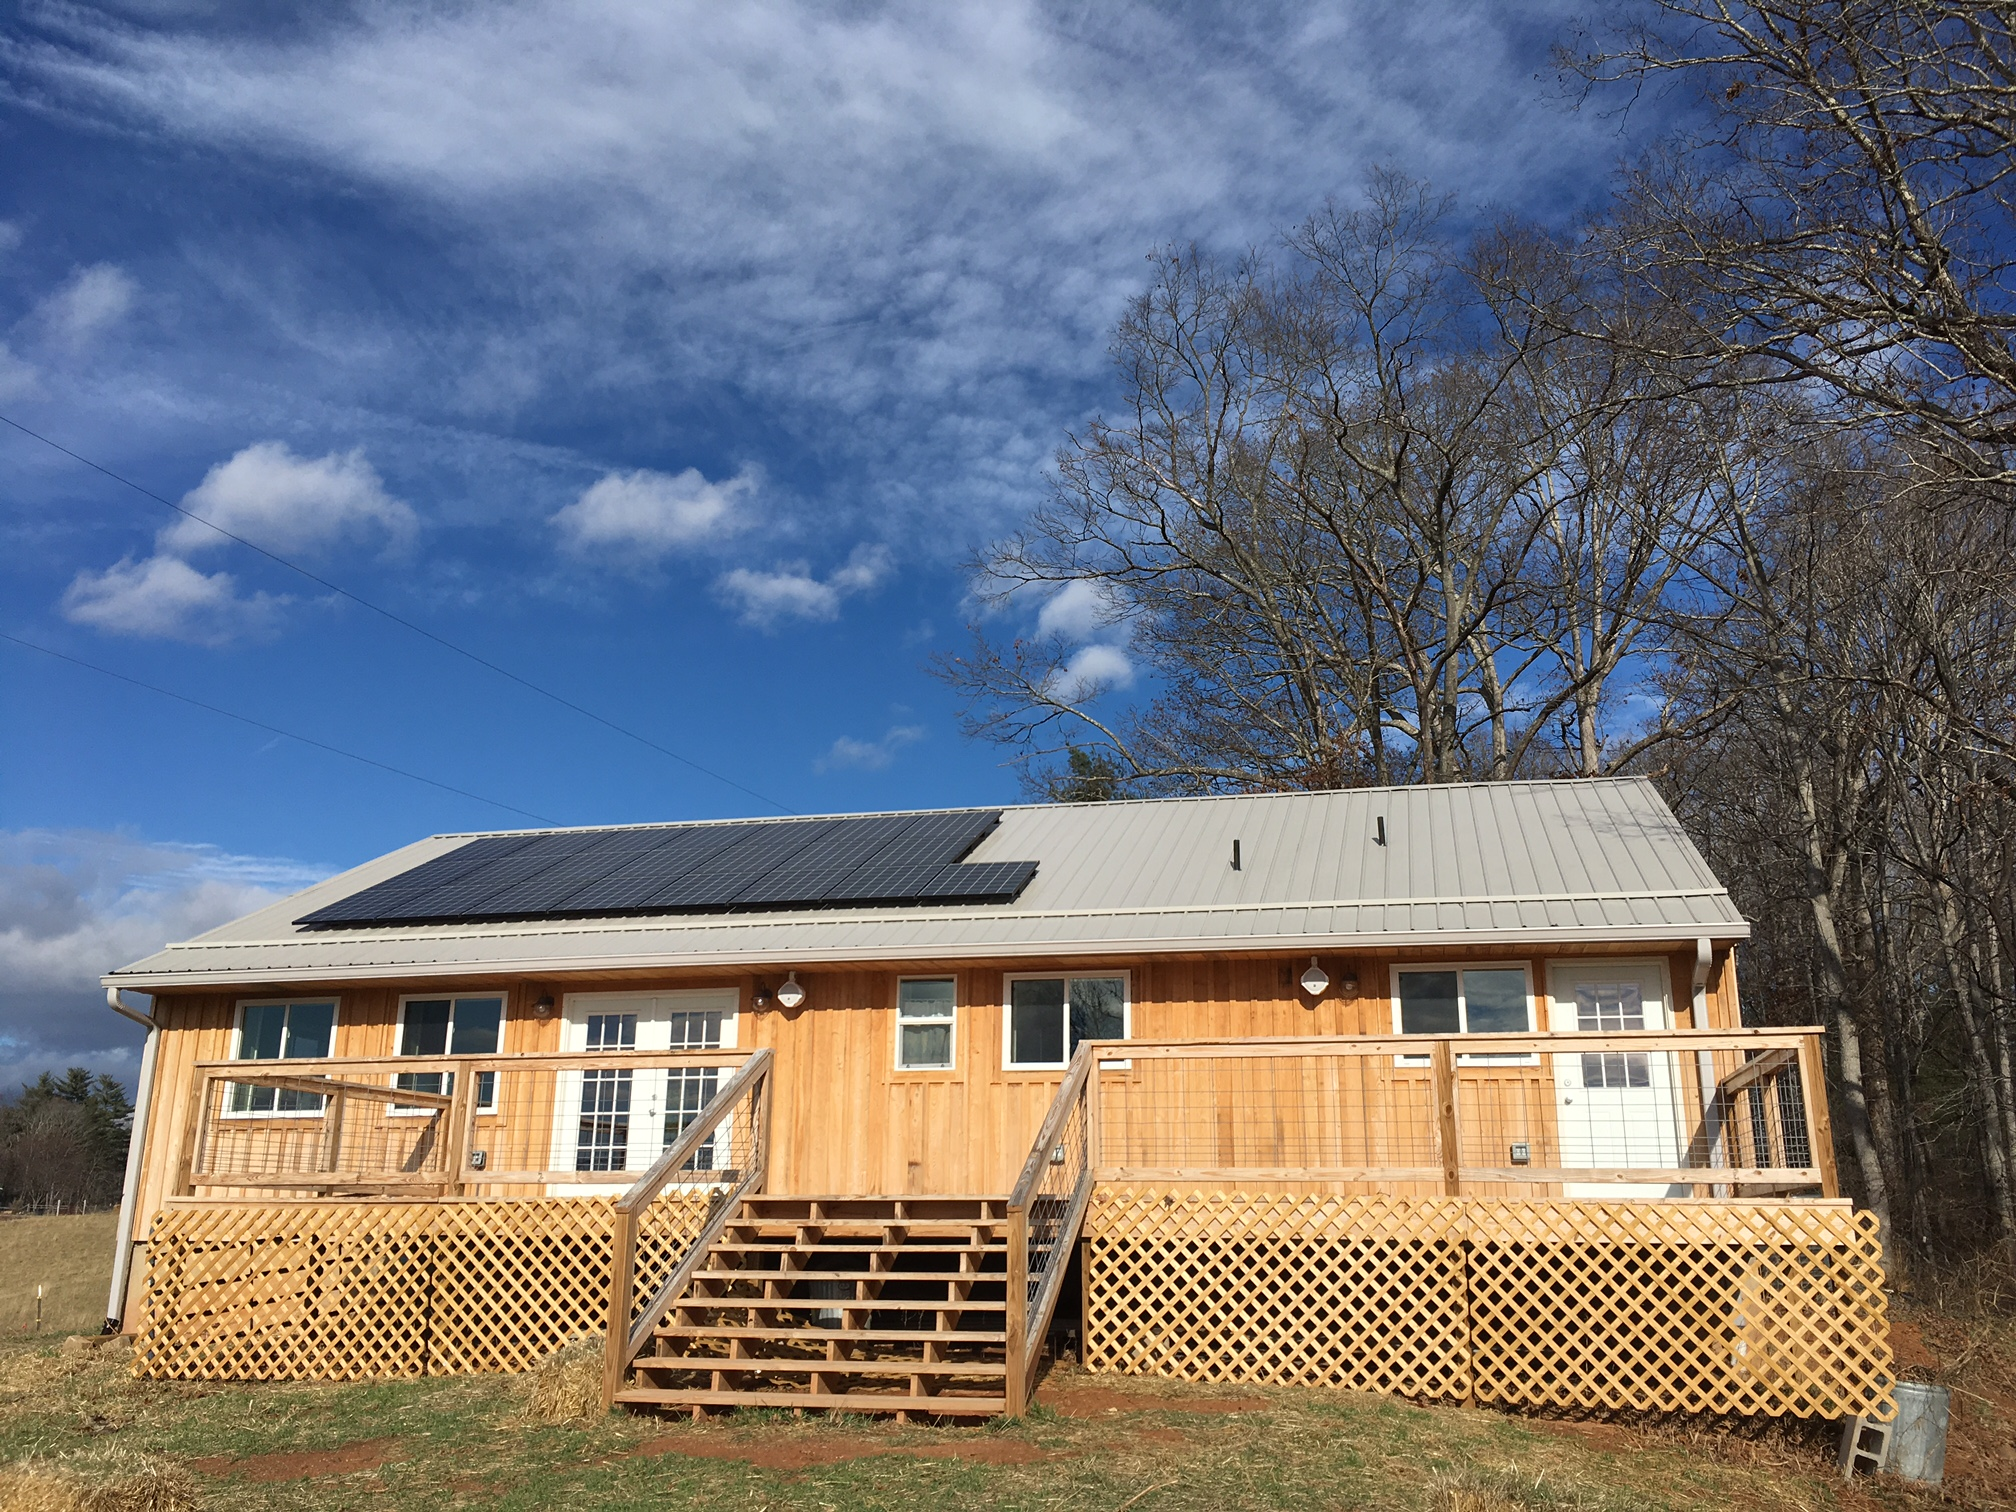 Solar Panels installed by Sugar Hollow Solar on top of the community building on SAHC's property.